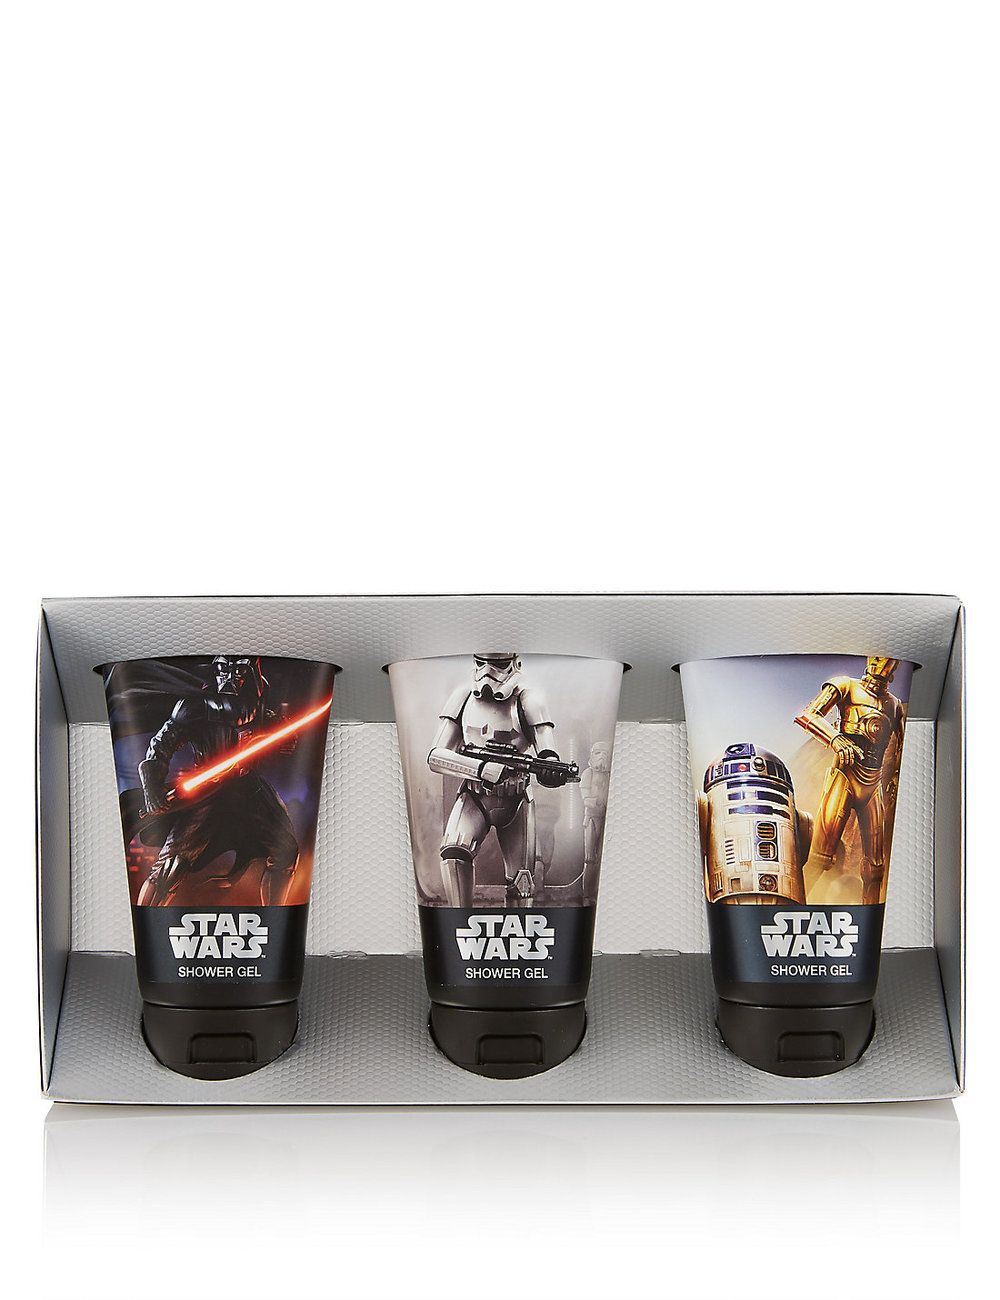 star-wars-shower-gel.jpeg